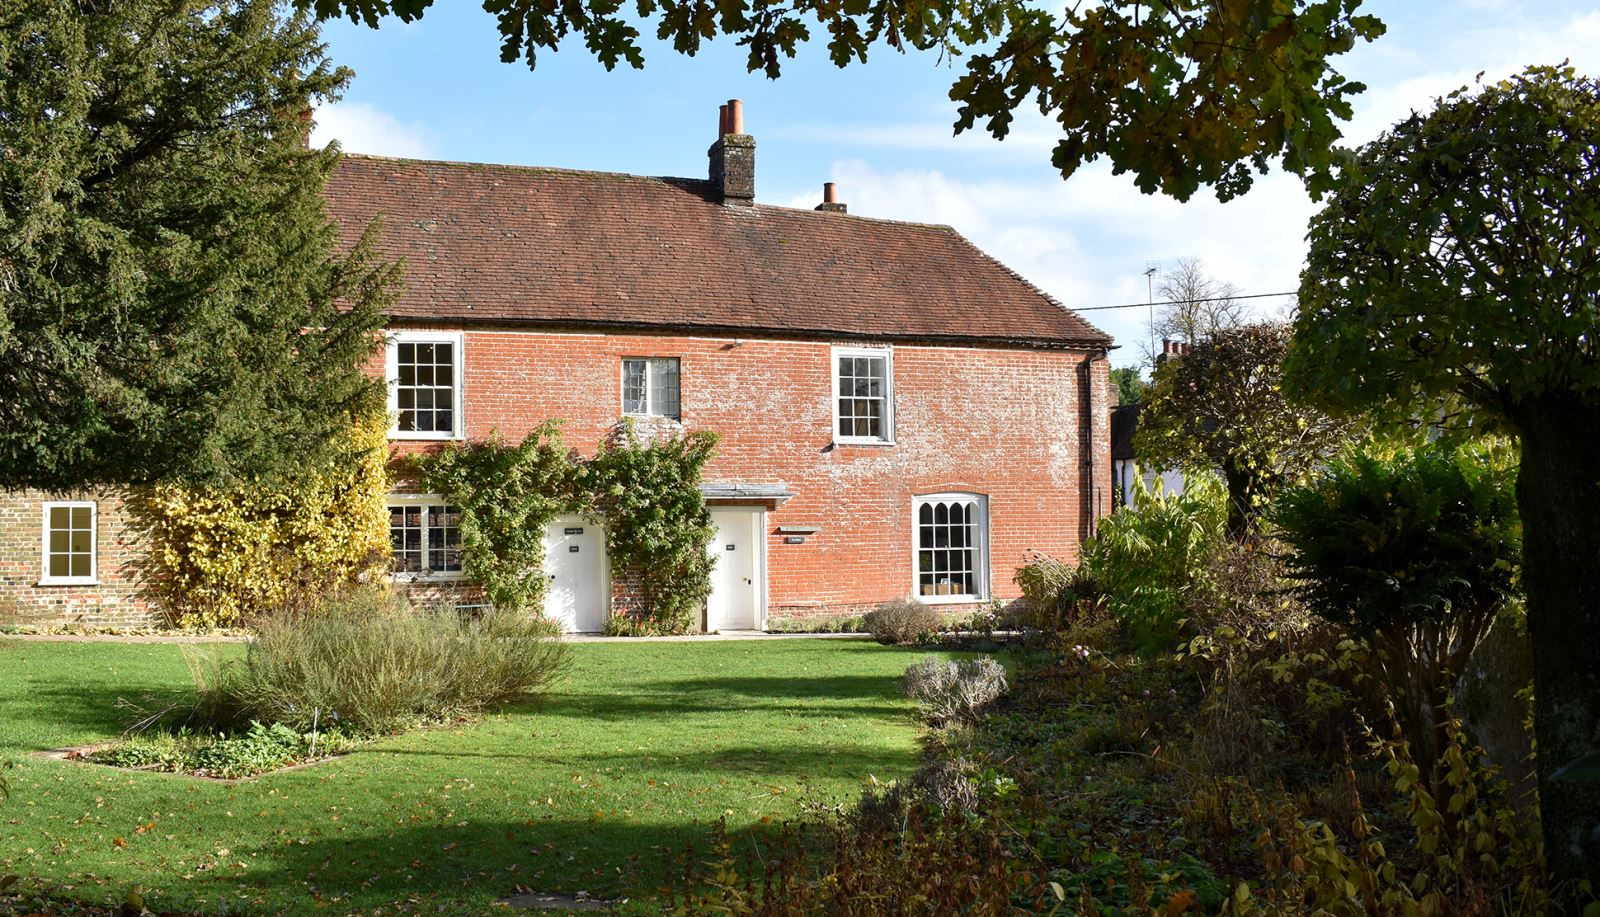 Jane Austen's House in the Village of Chawton, Hampshire